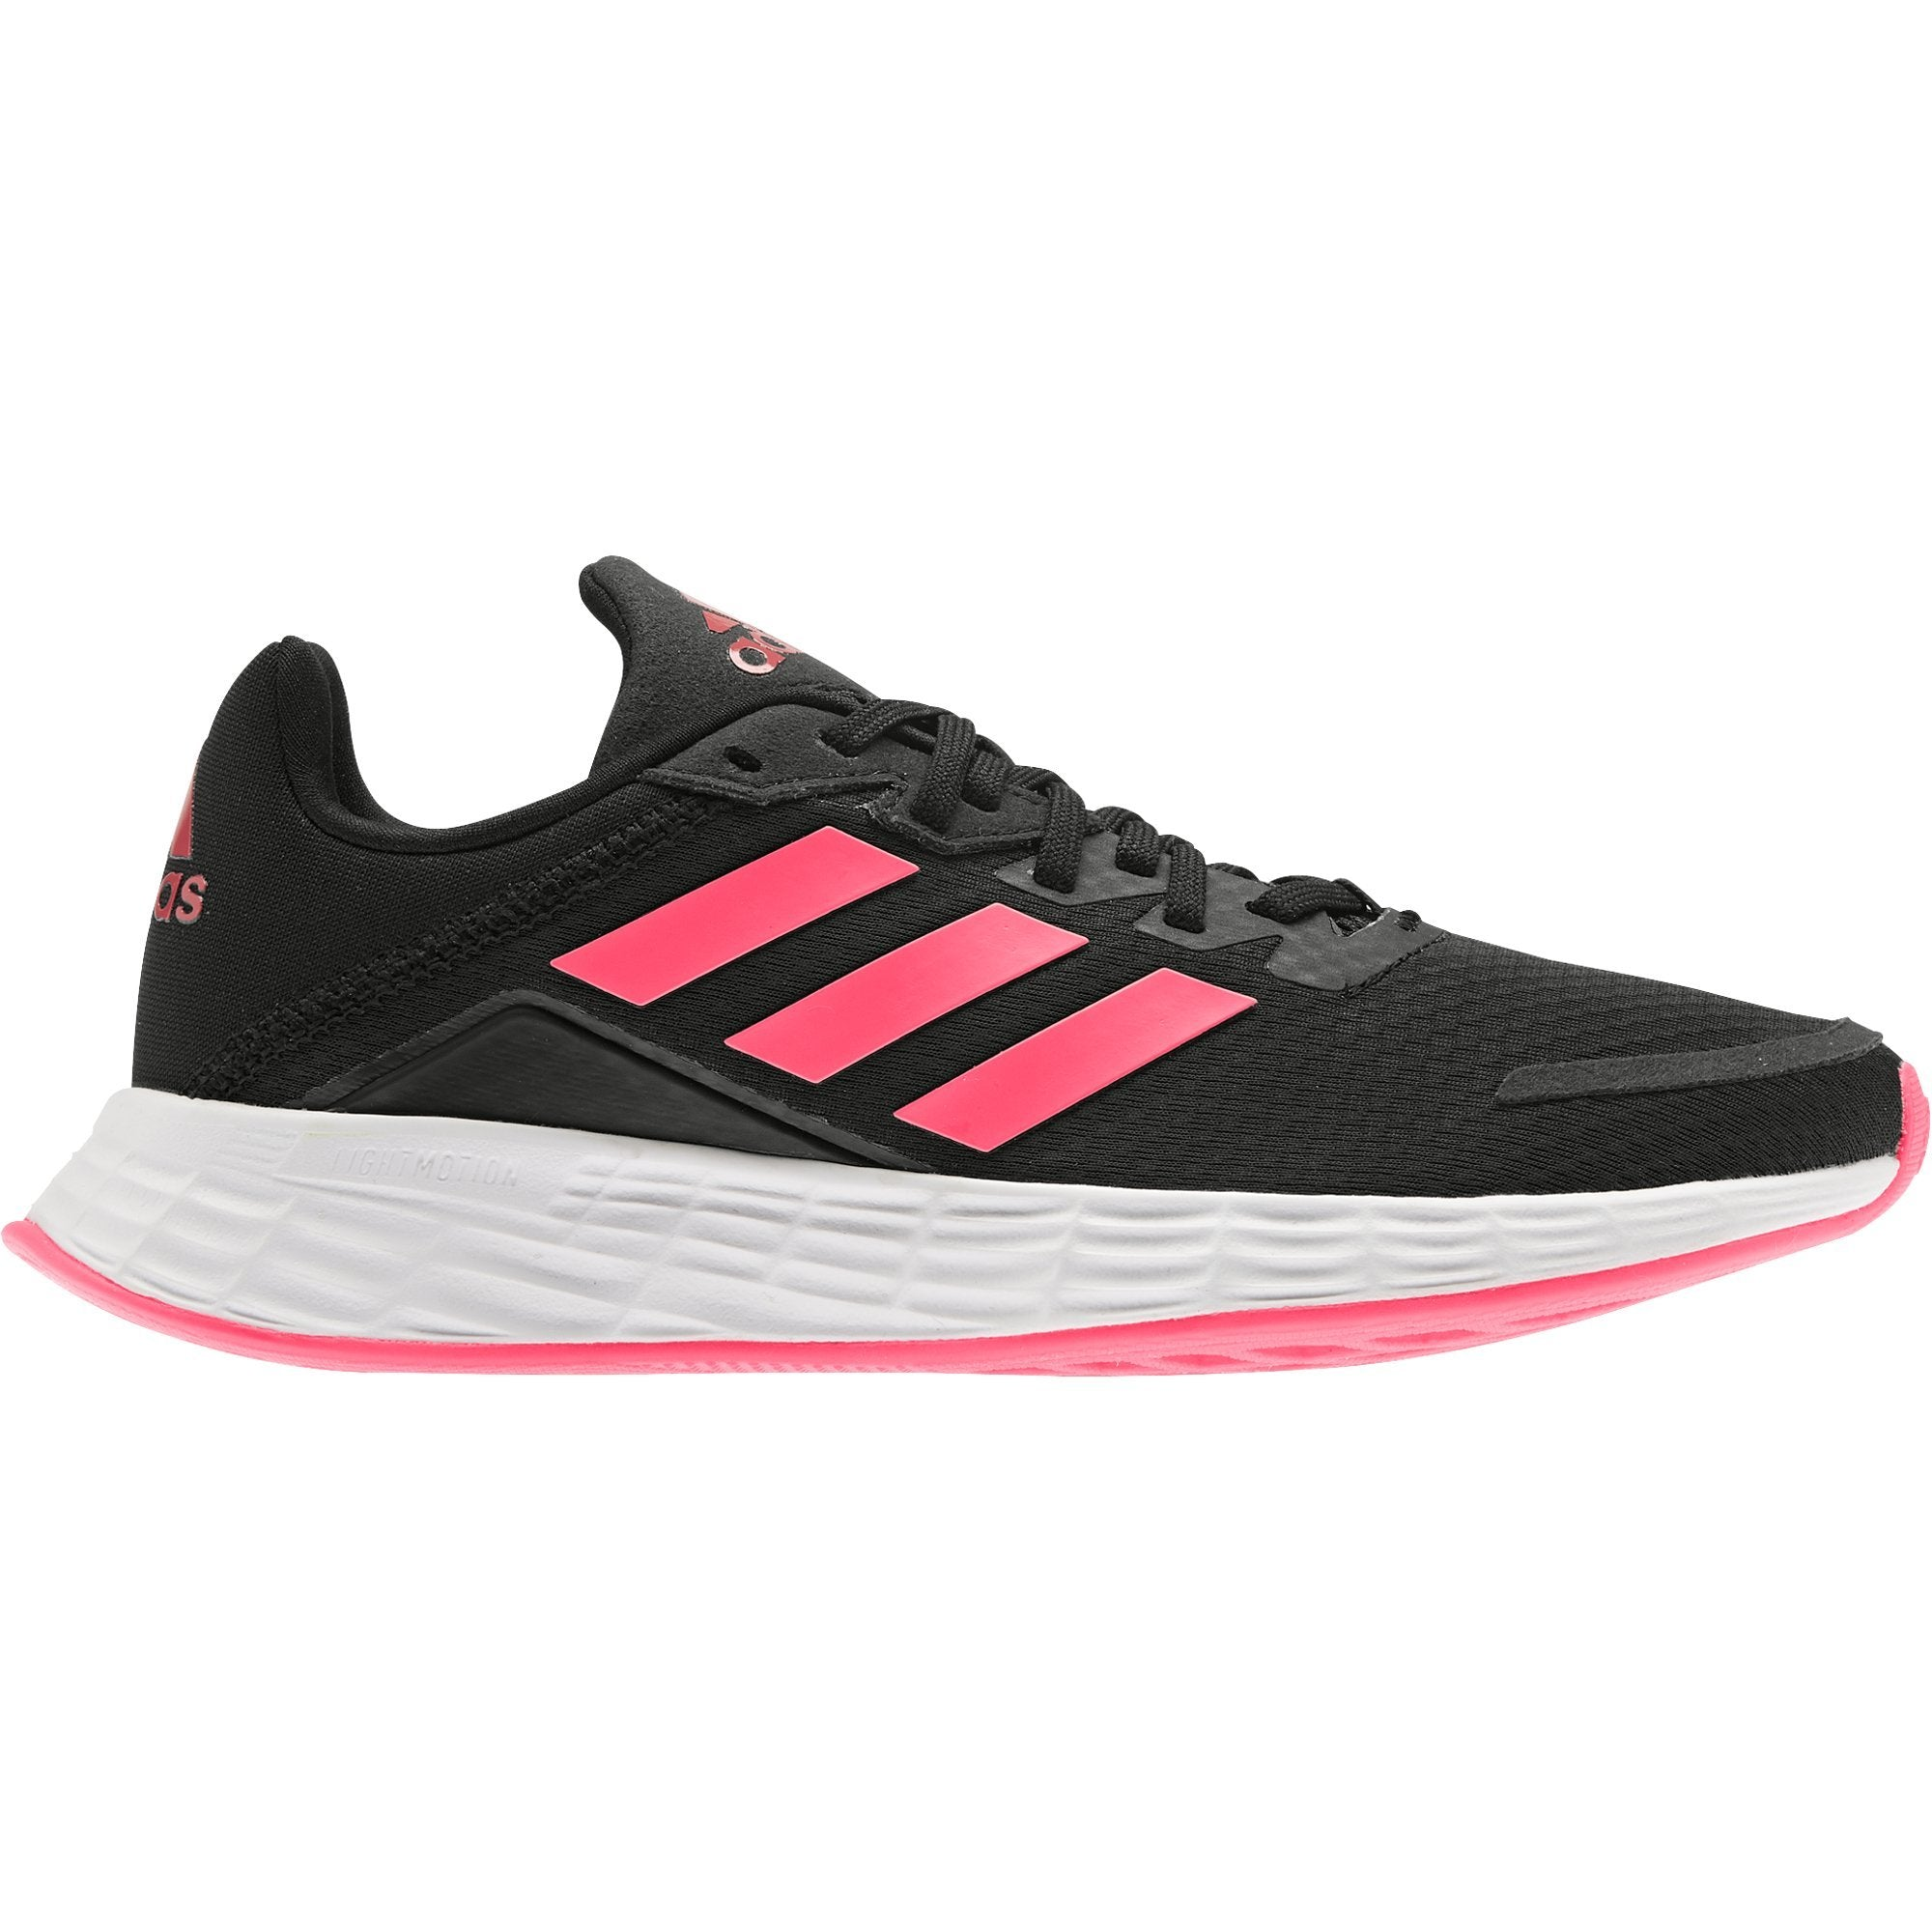 Adidas Kid's Duramo SL K - Core Black/Signal Pink/Royal Blue